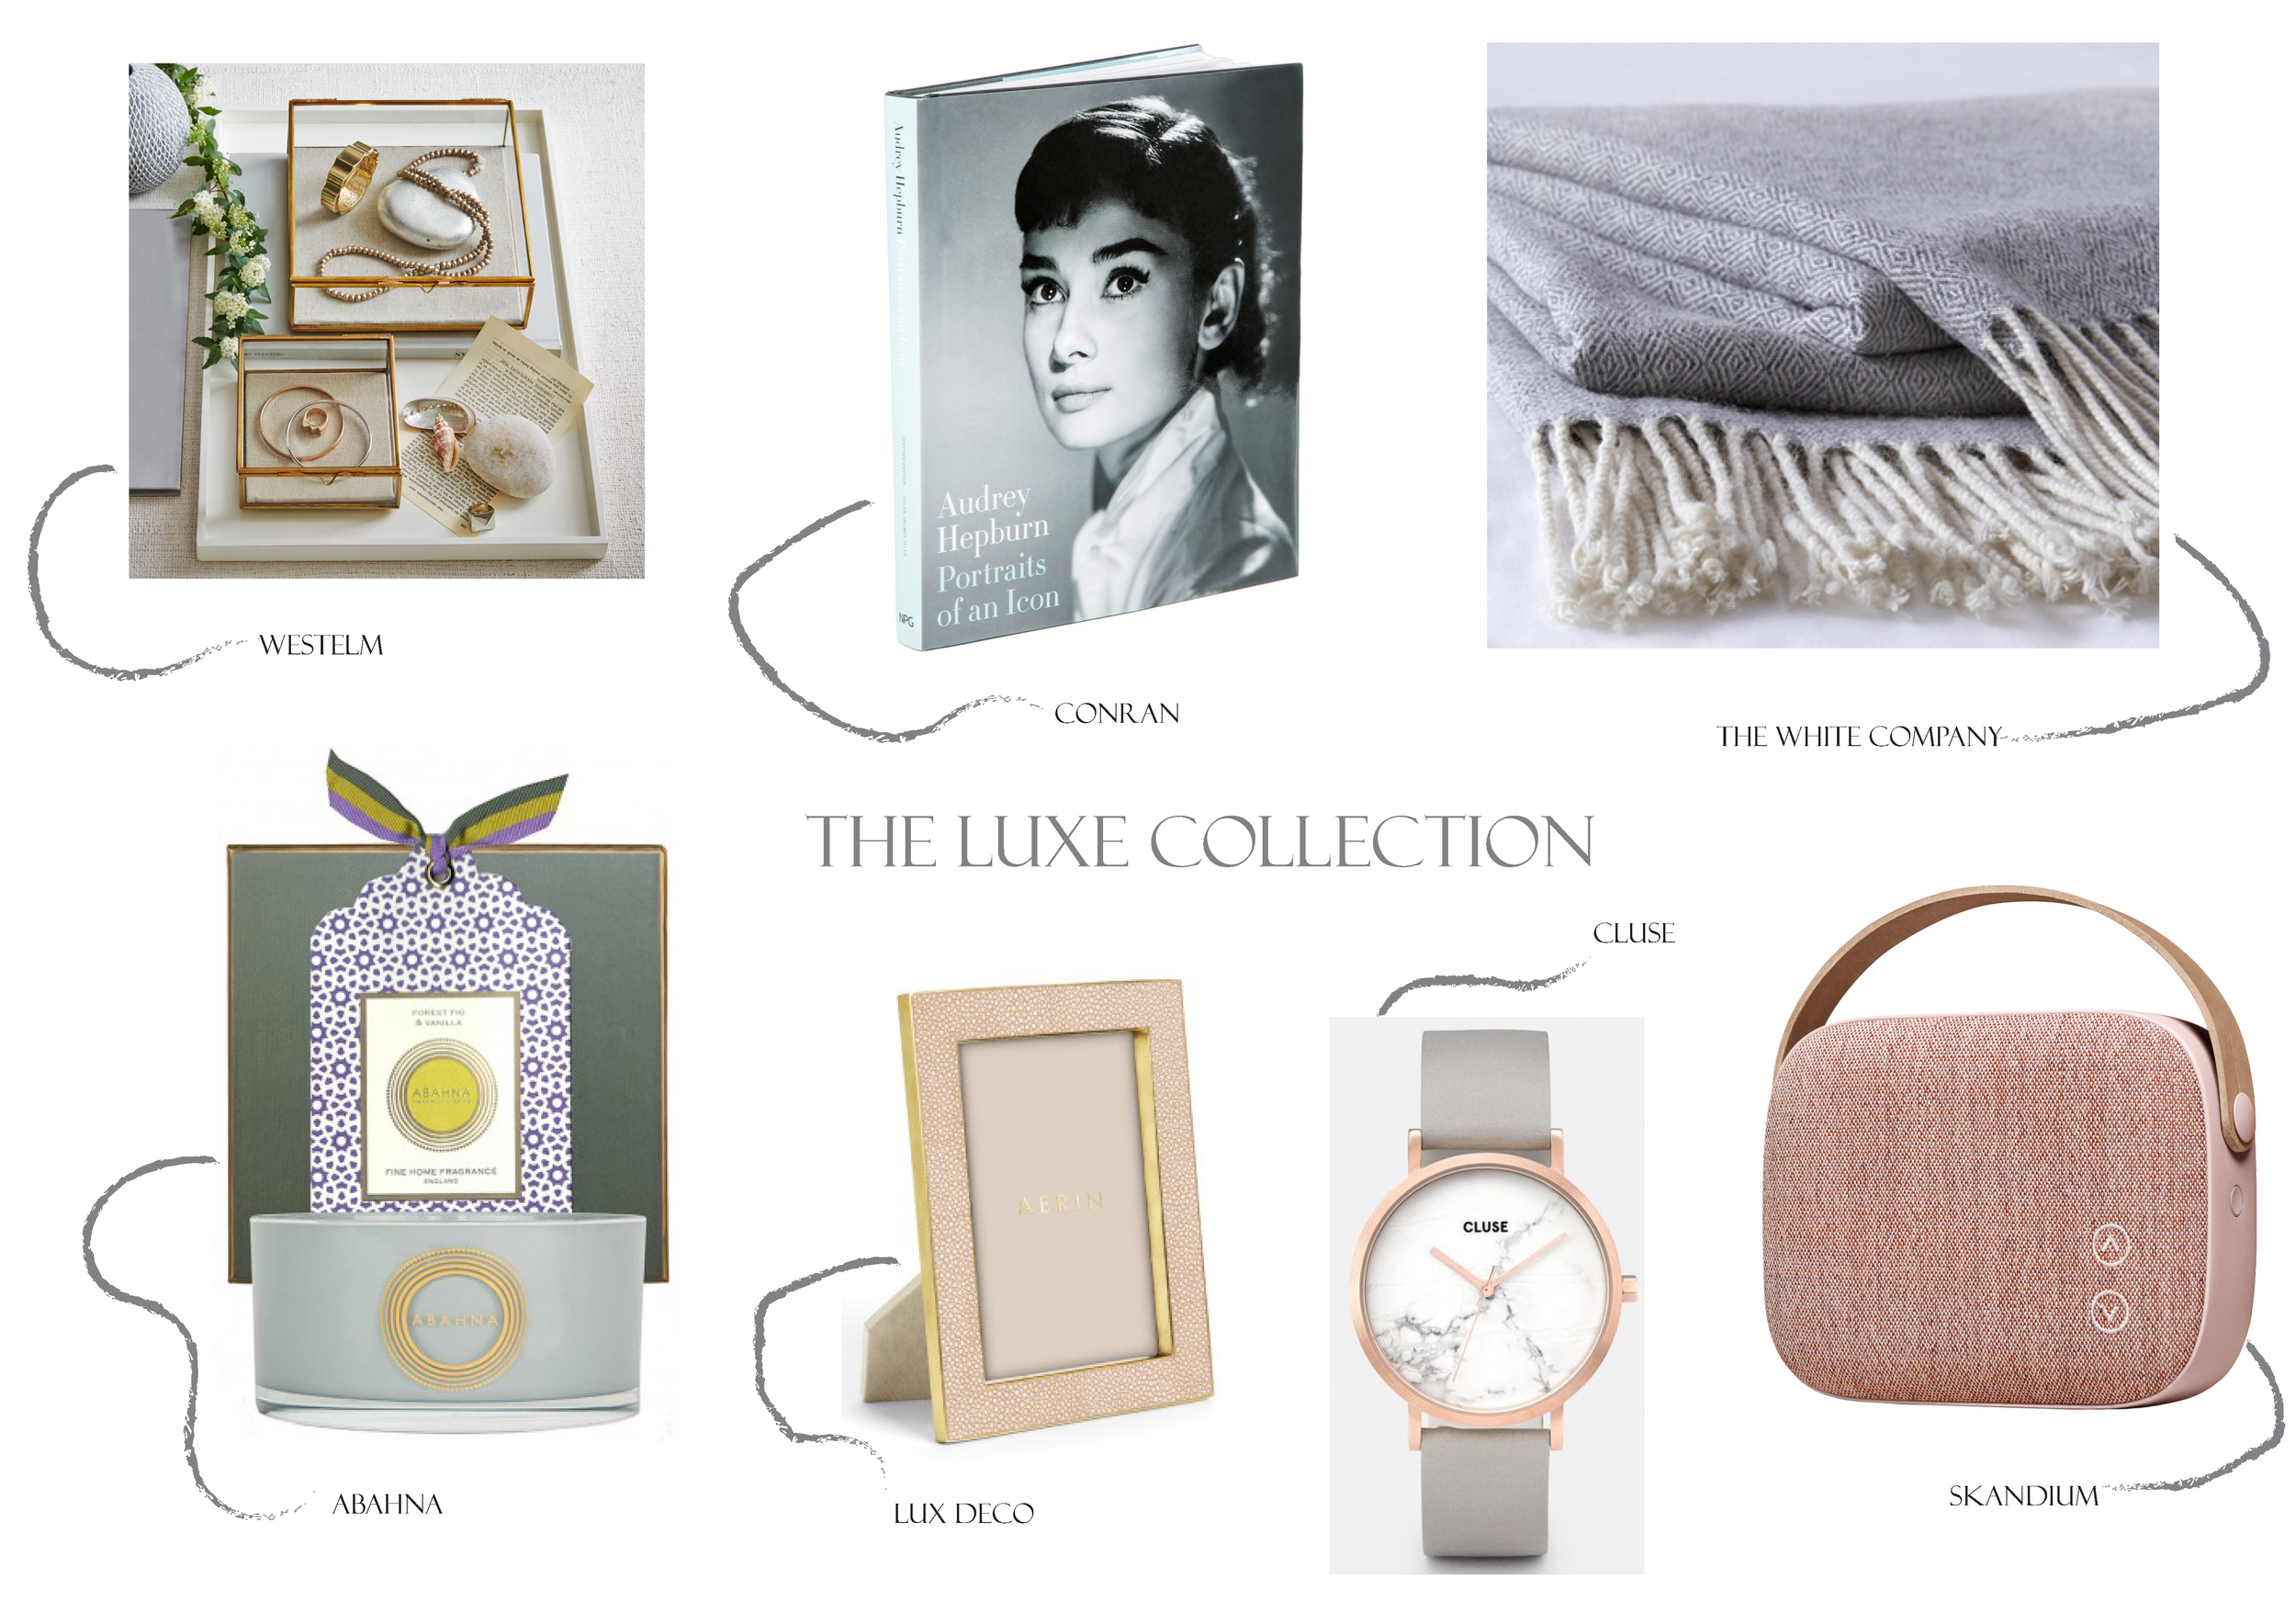 The Luxe Edit for those who crave the finer things in life with a touch of glamour ....